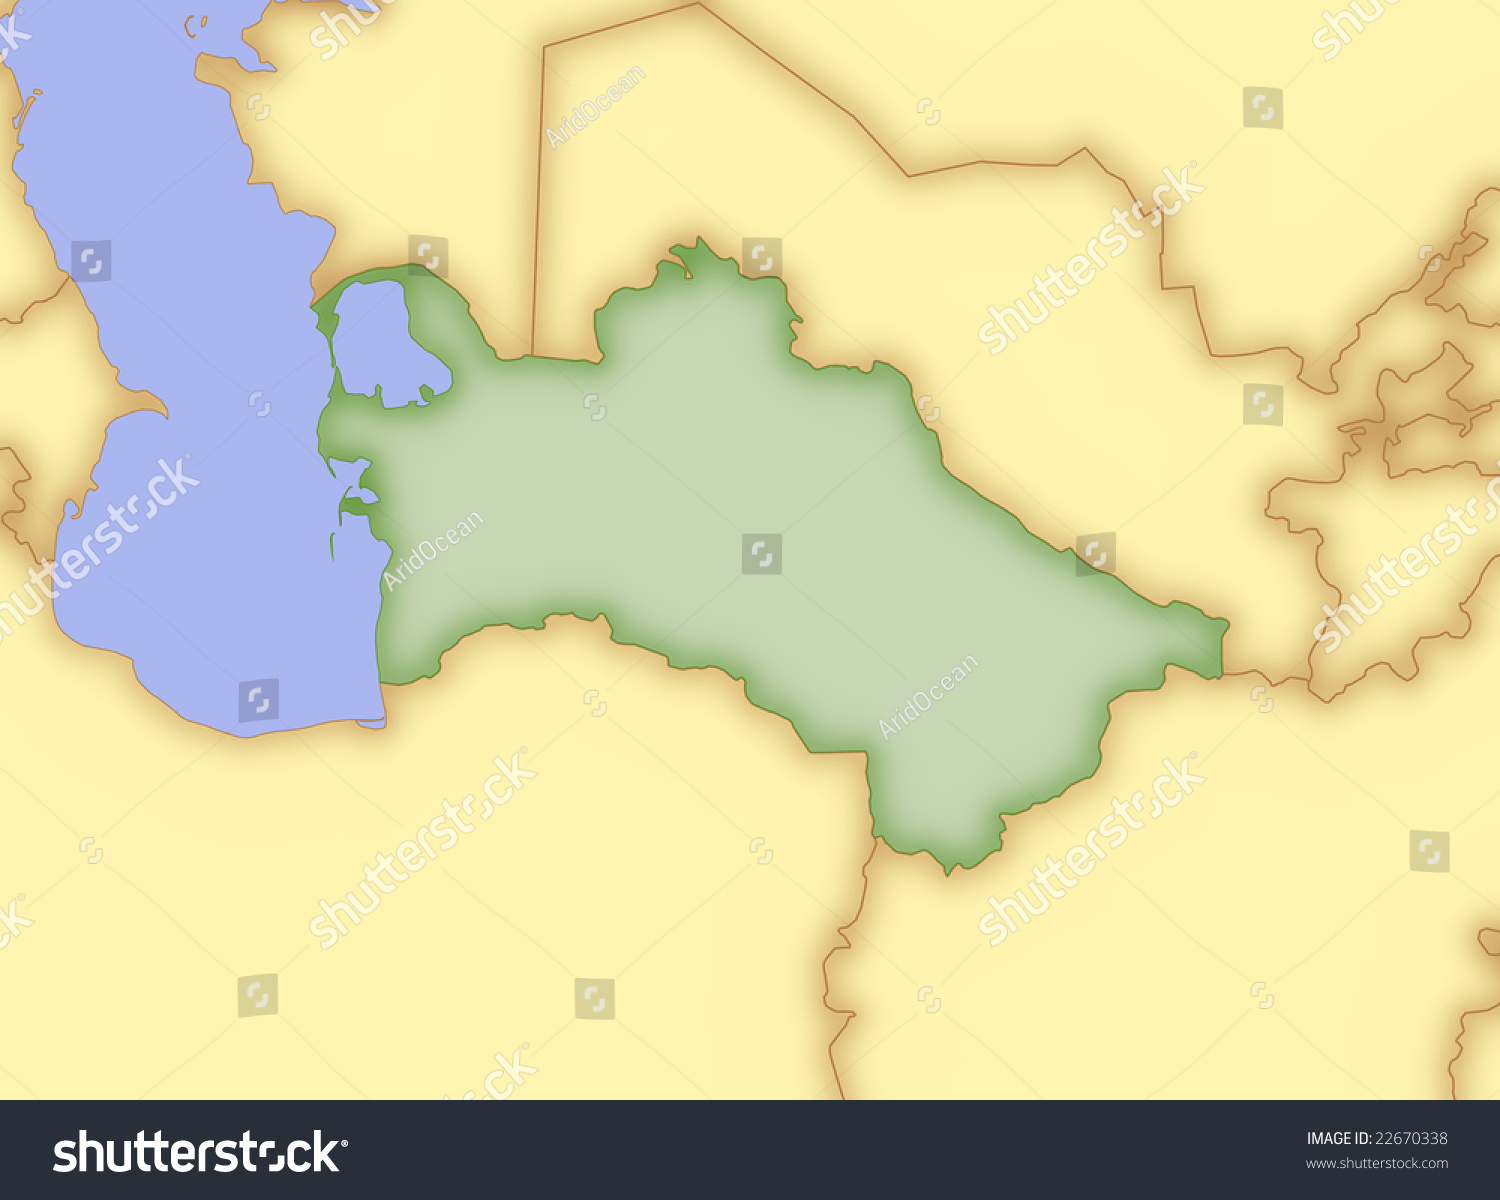 Map turkmenistan borders surrounding countries stock illustration map of turkmenistan with borders of surrounding countries sciox Image collections